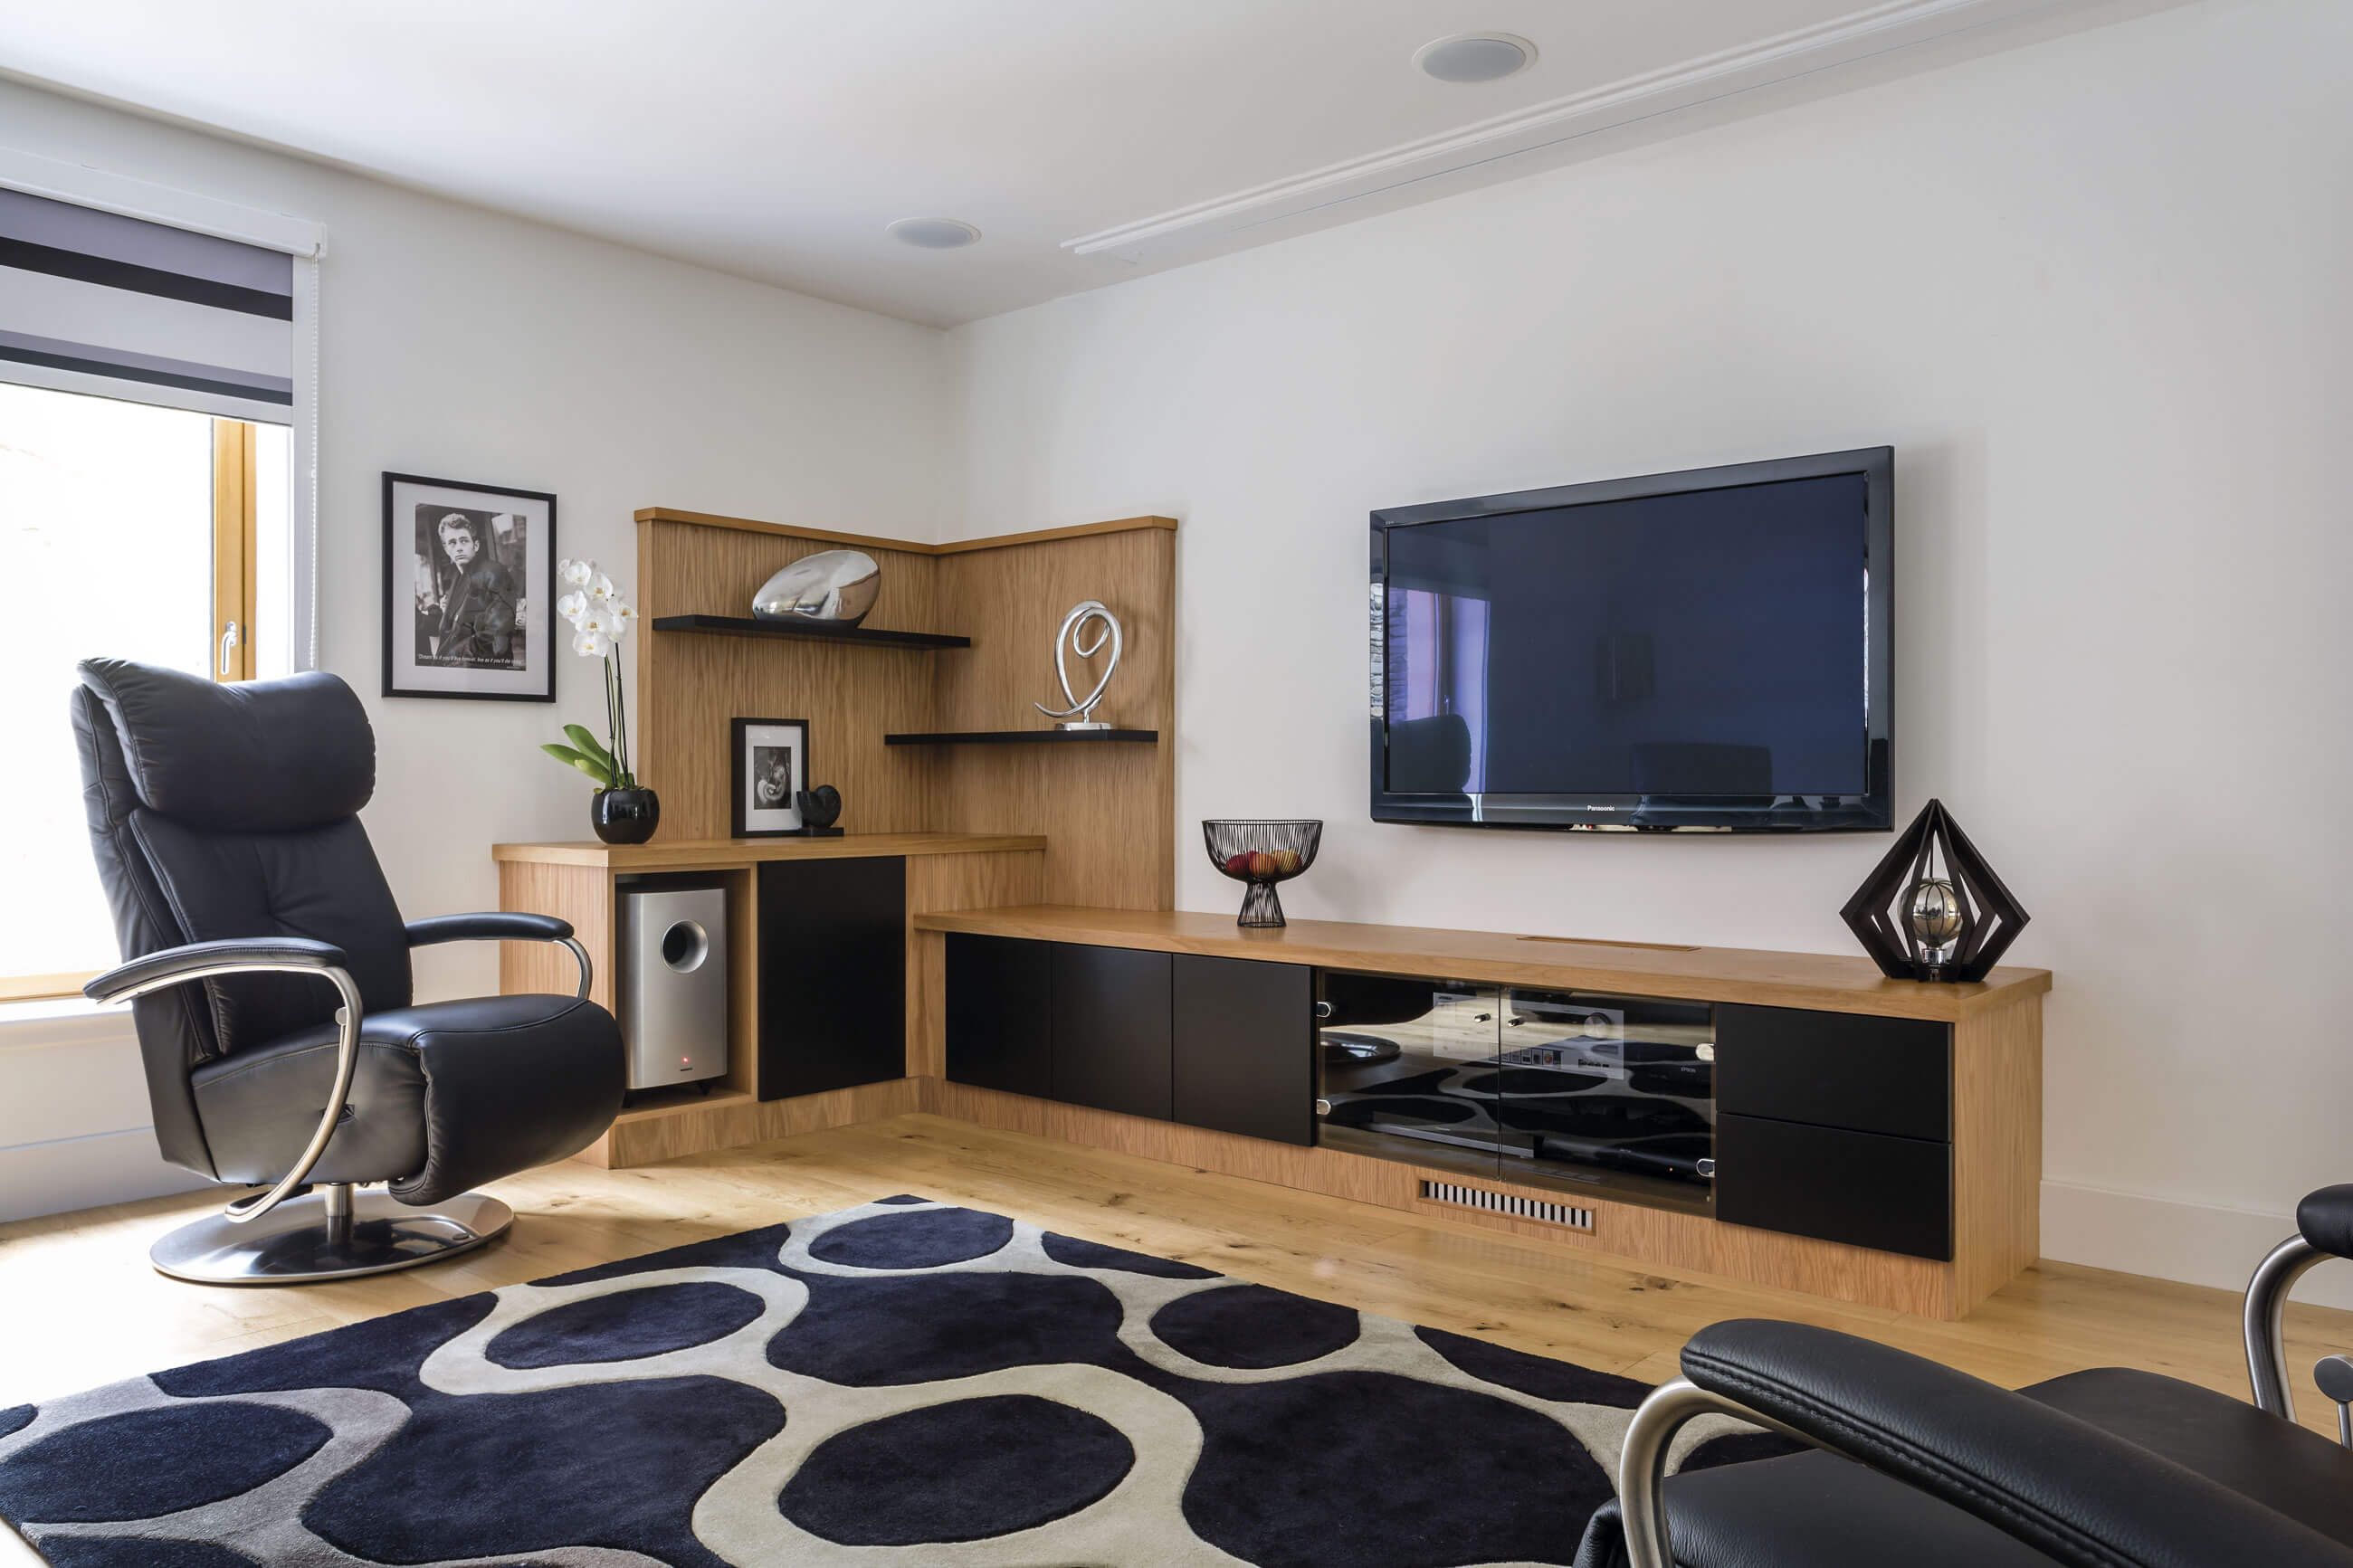 cinema room furniture. View All Images Cinema Room Furniture O